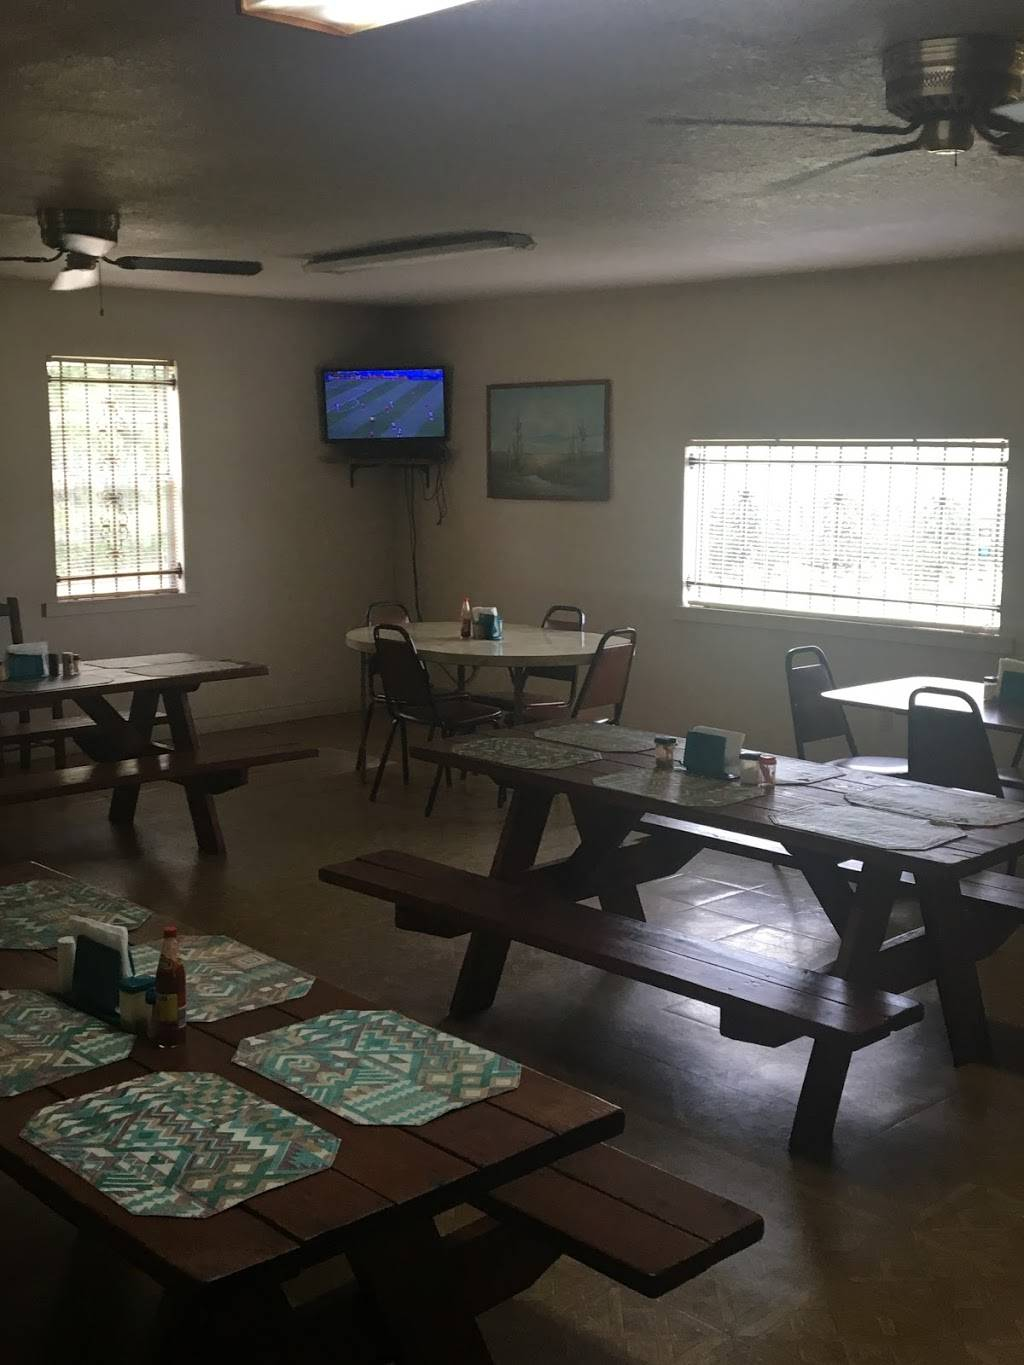 KC's Pit Barbecue | restaurant | 3448 County Rd 310, Brazoria, TX 77422, USA | 9799644026 OR +1 979-964-4026